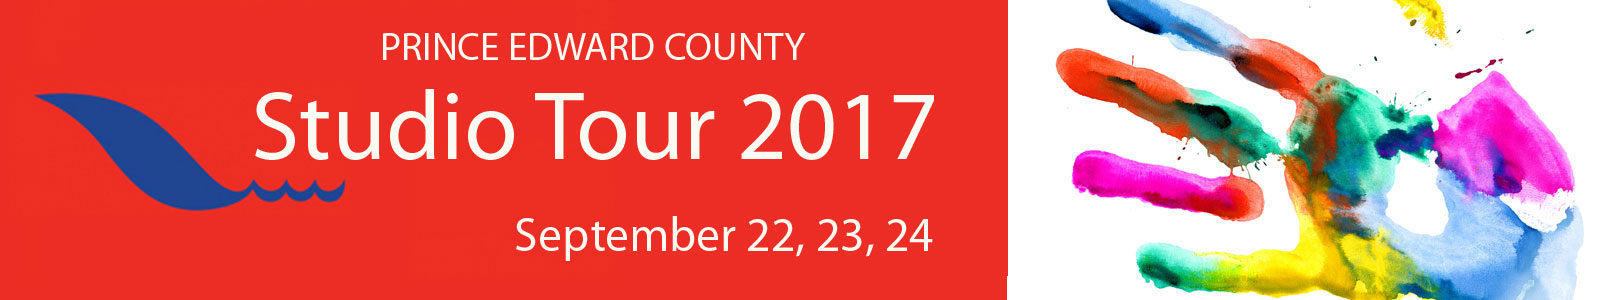 Prince Edward County Studio Tour 2017 September 22, 23, 24